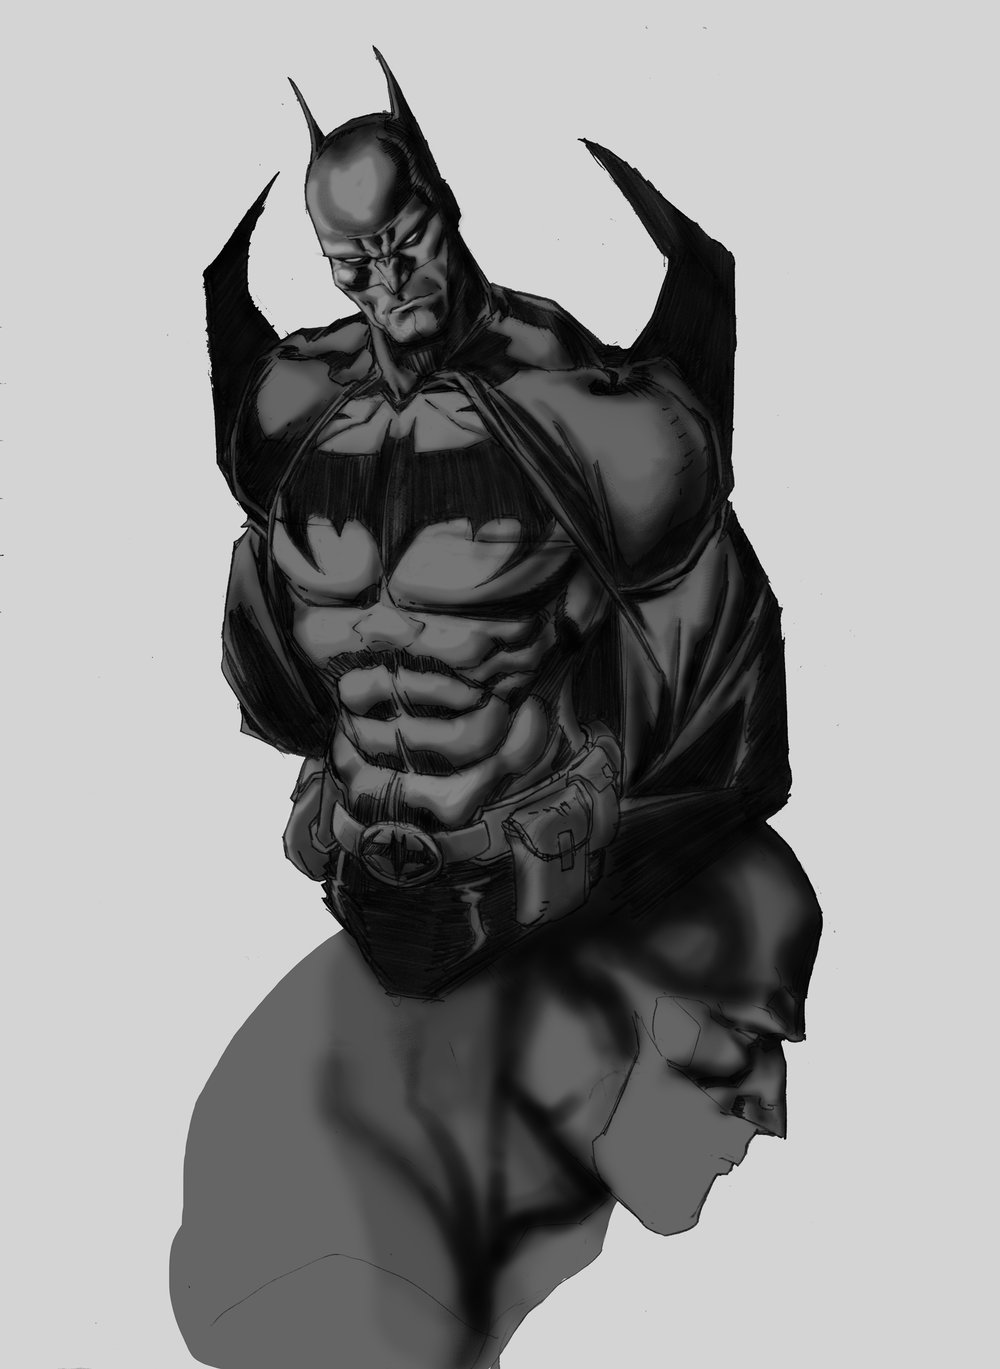 Batman sketch 1 rgb_300_8.5x11.jpg